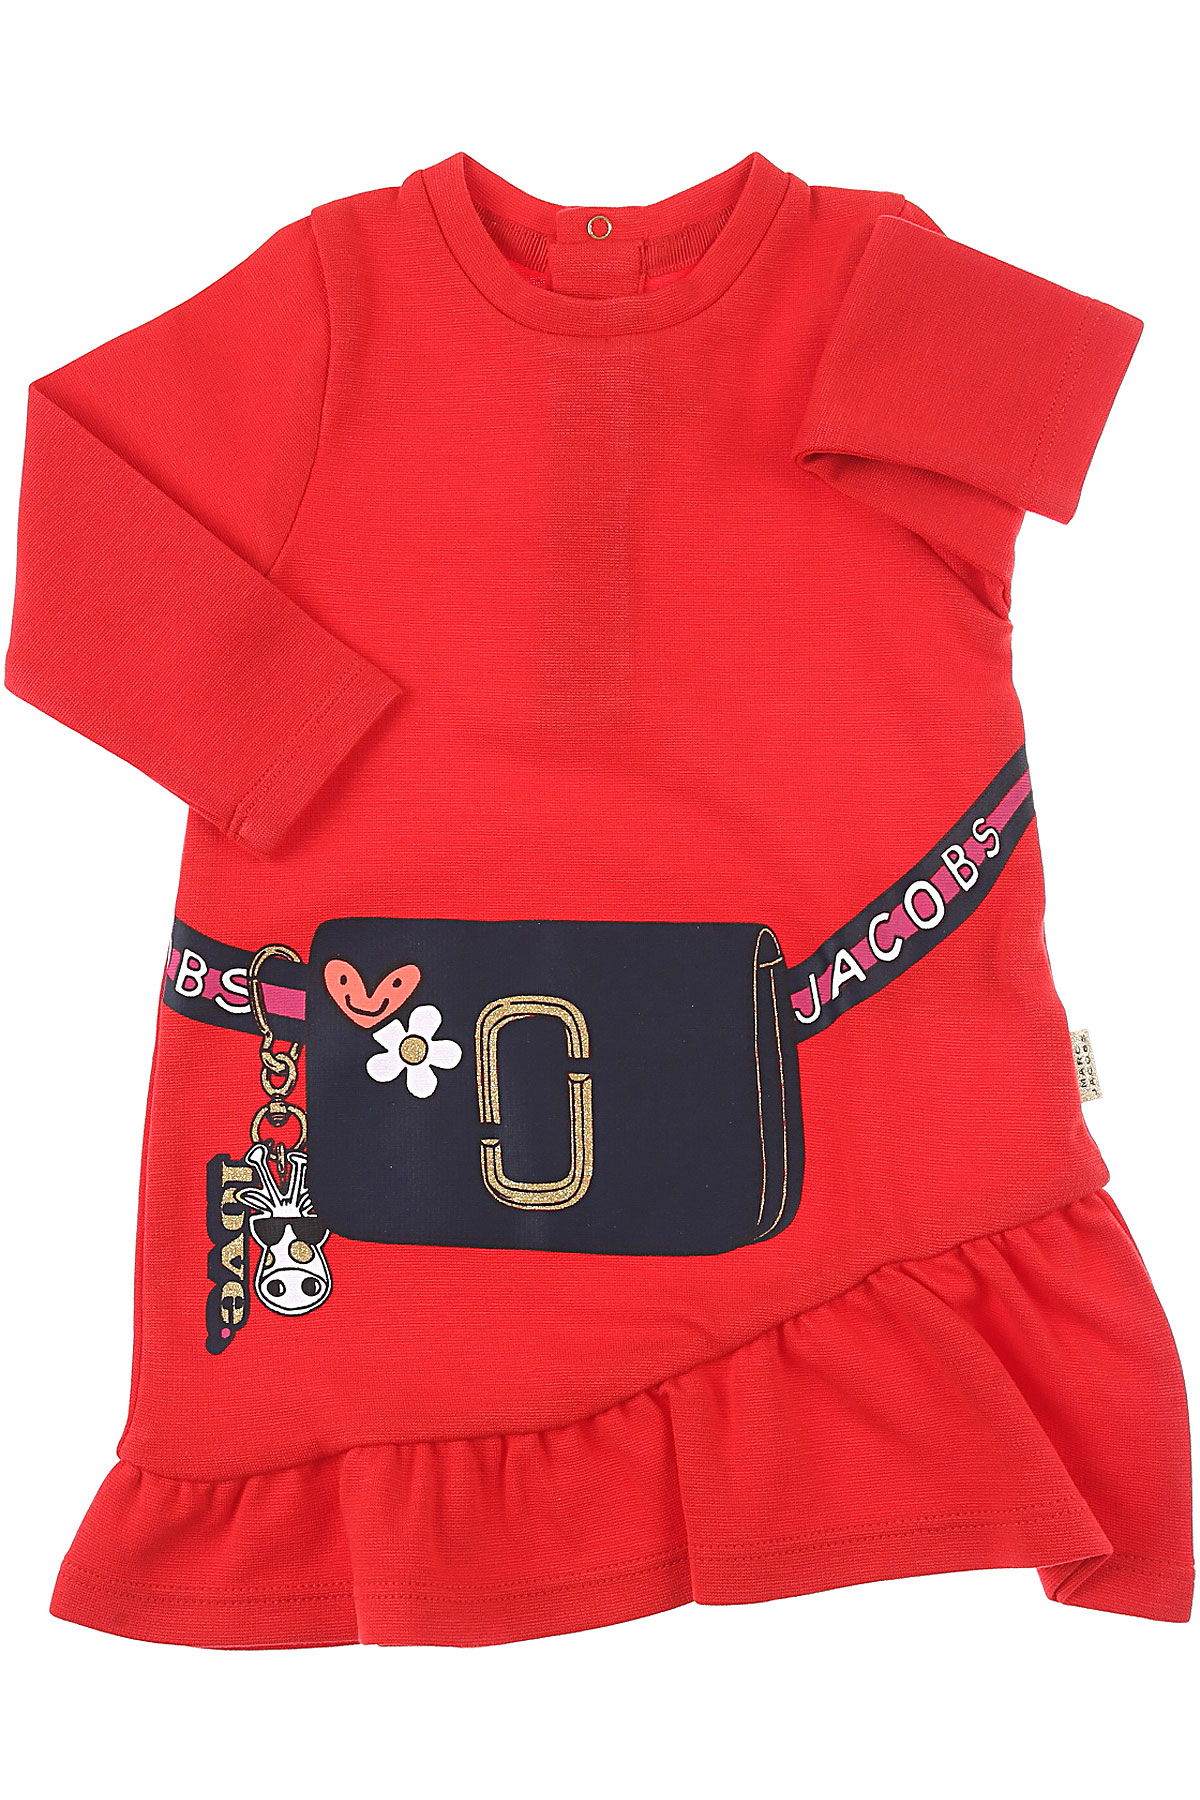 Marc Jacobs Baby Dress for Girls On Sale, Red, Cotton, 2019, 12M 18M 2Y 3Y 9M